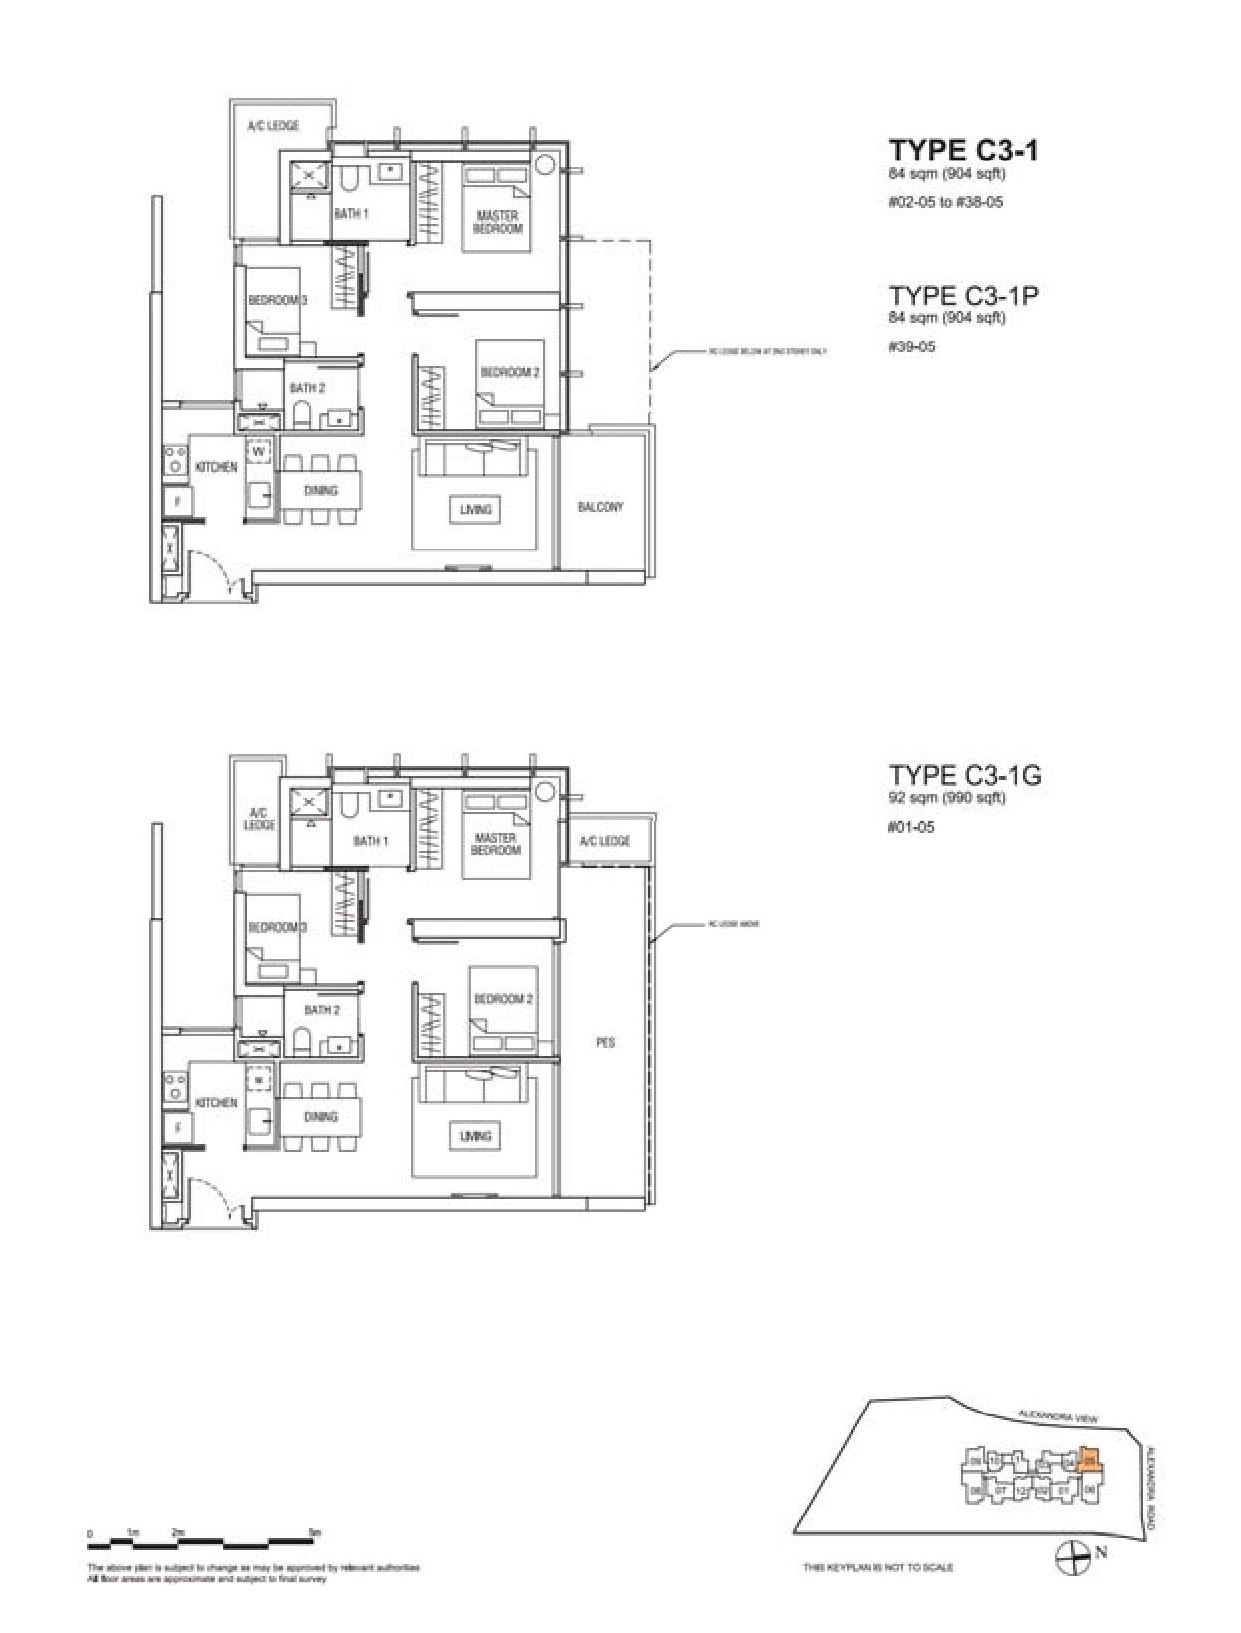 Alex Residences 3 Bedroom Floor Plans Type C3-1, C3-1P, C3-1G